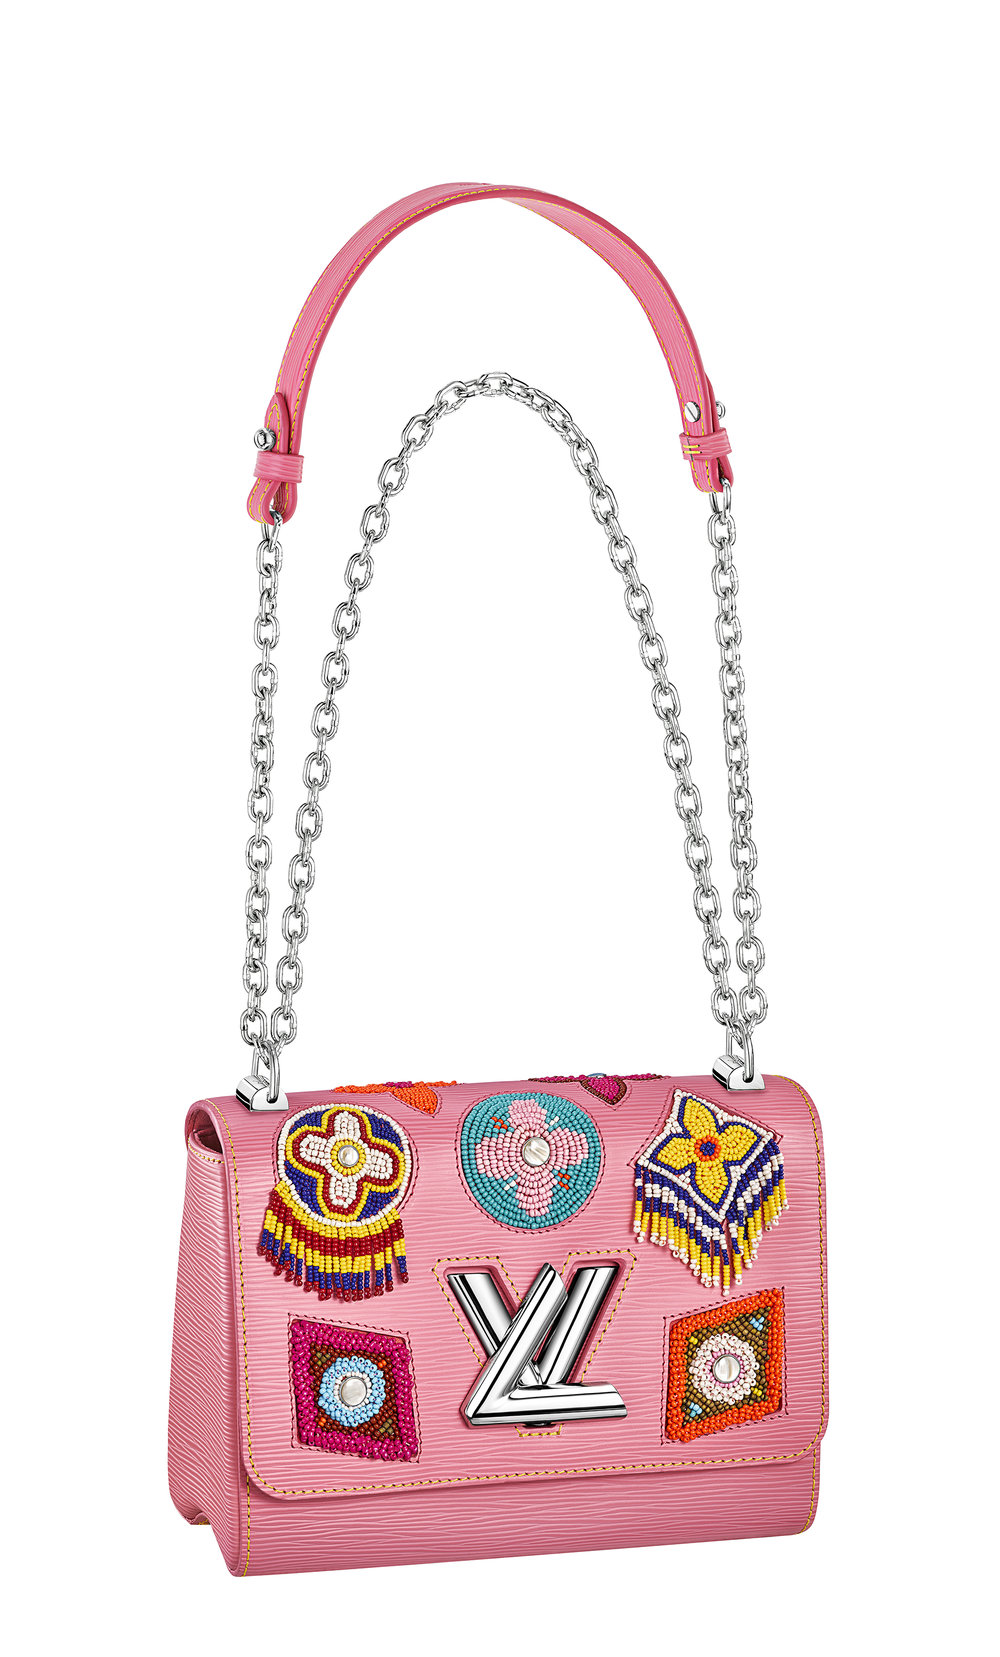 Luxurious exploding pinks from Louis Vuitton.